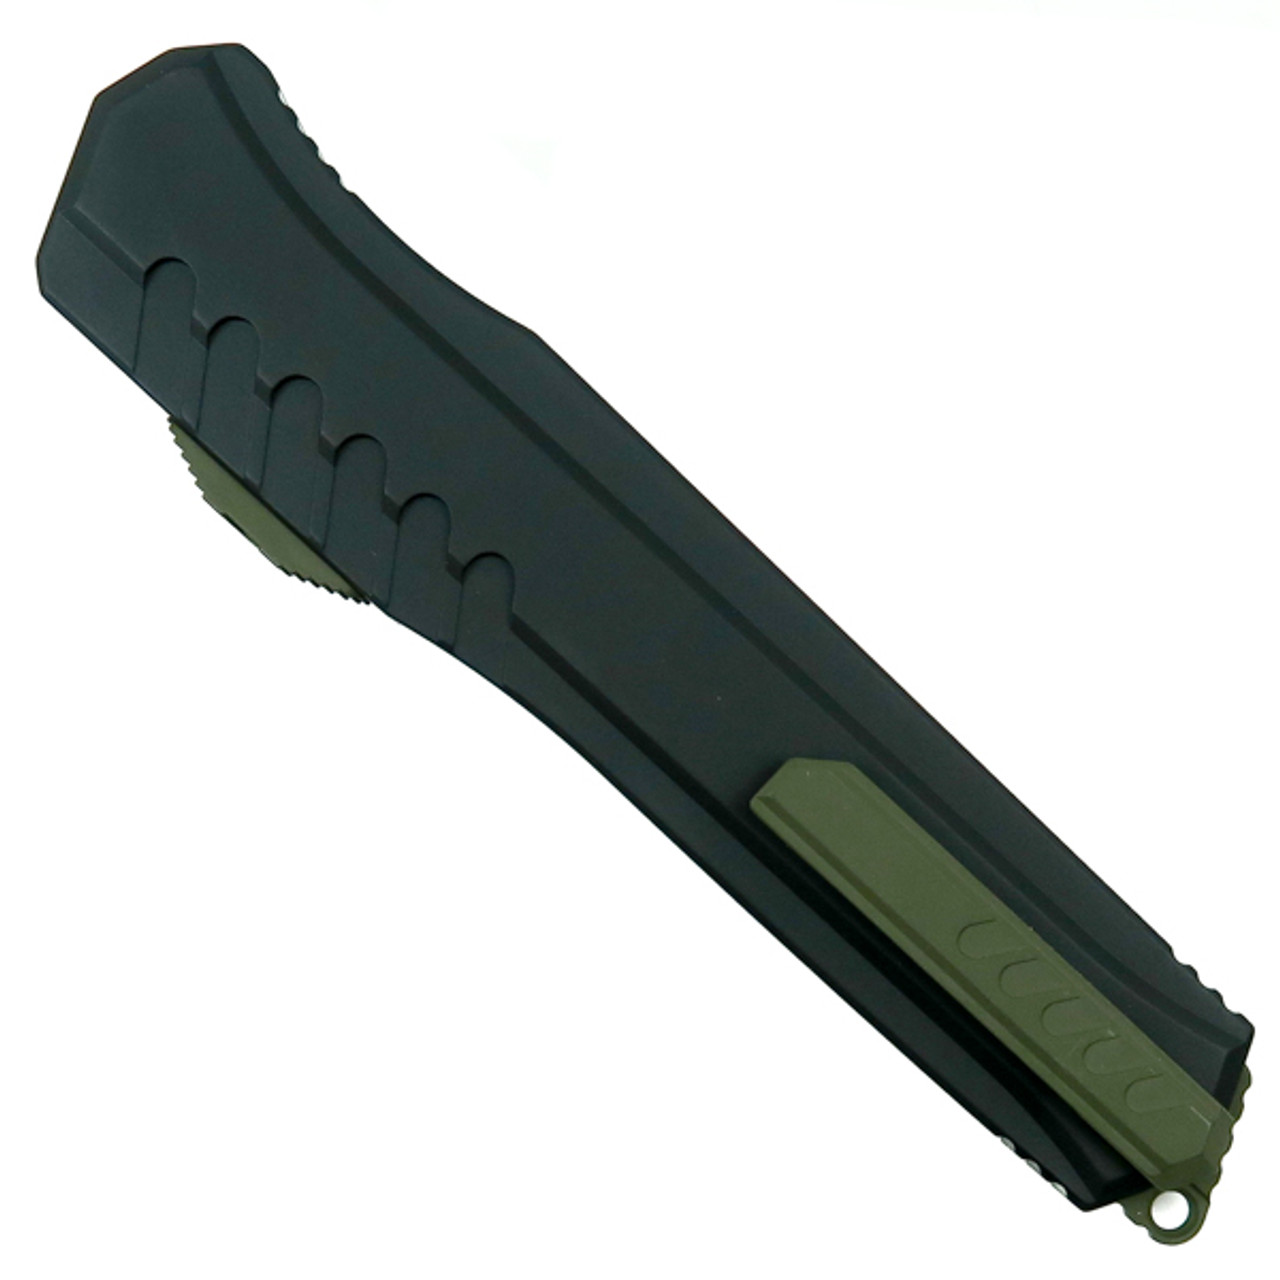 Microtech Limited 241M-1GRB Cypher MK7 S/E OTF Auto Knife, Green Hardware, Green/Satin Blade